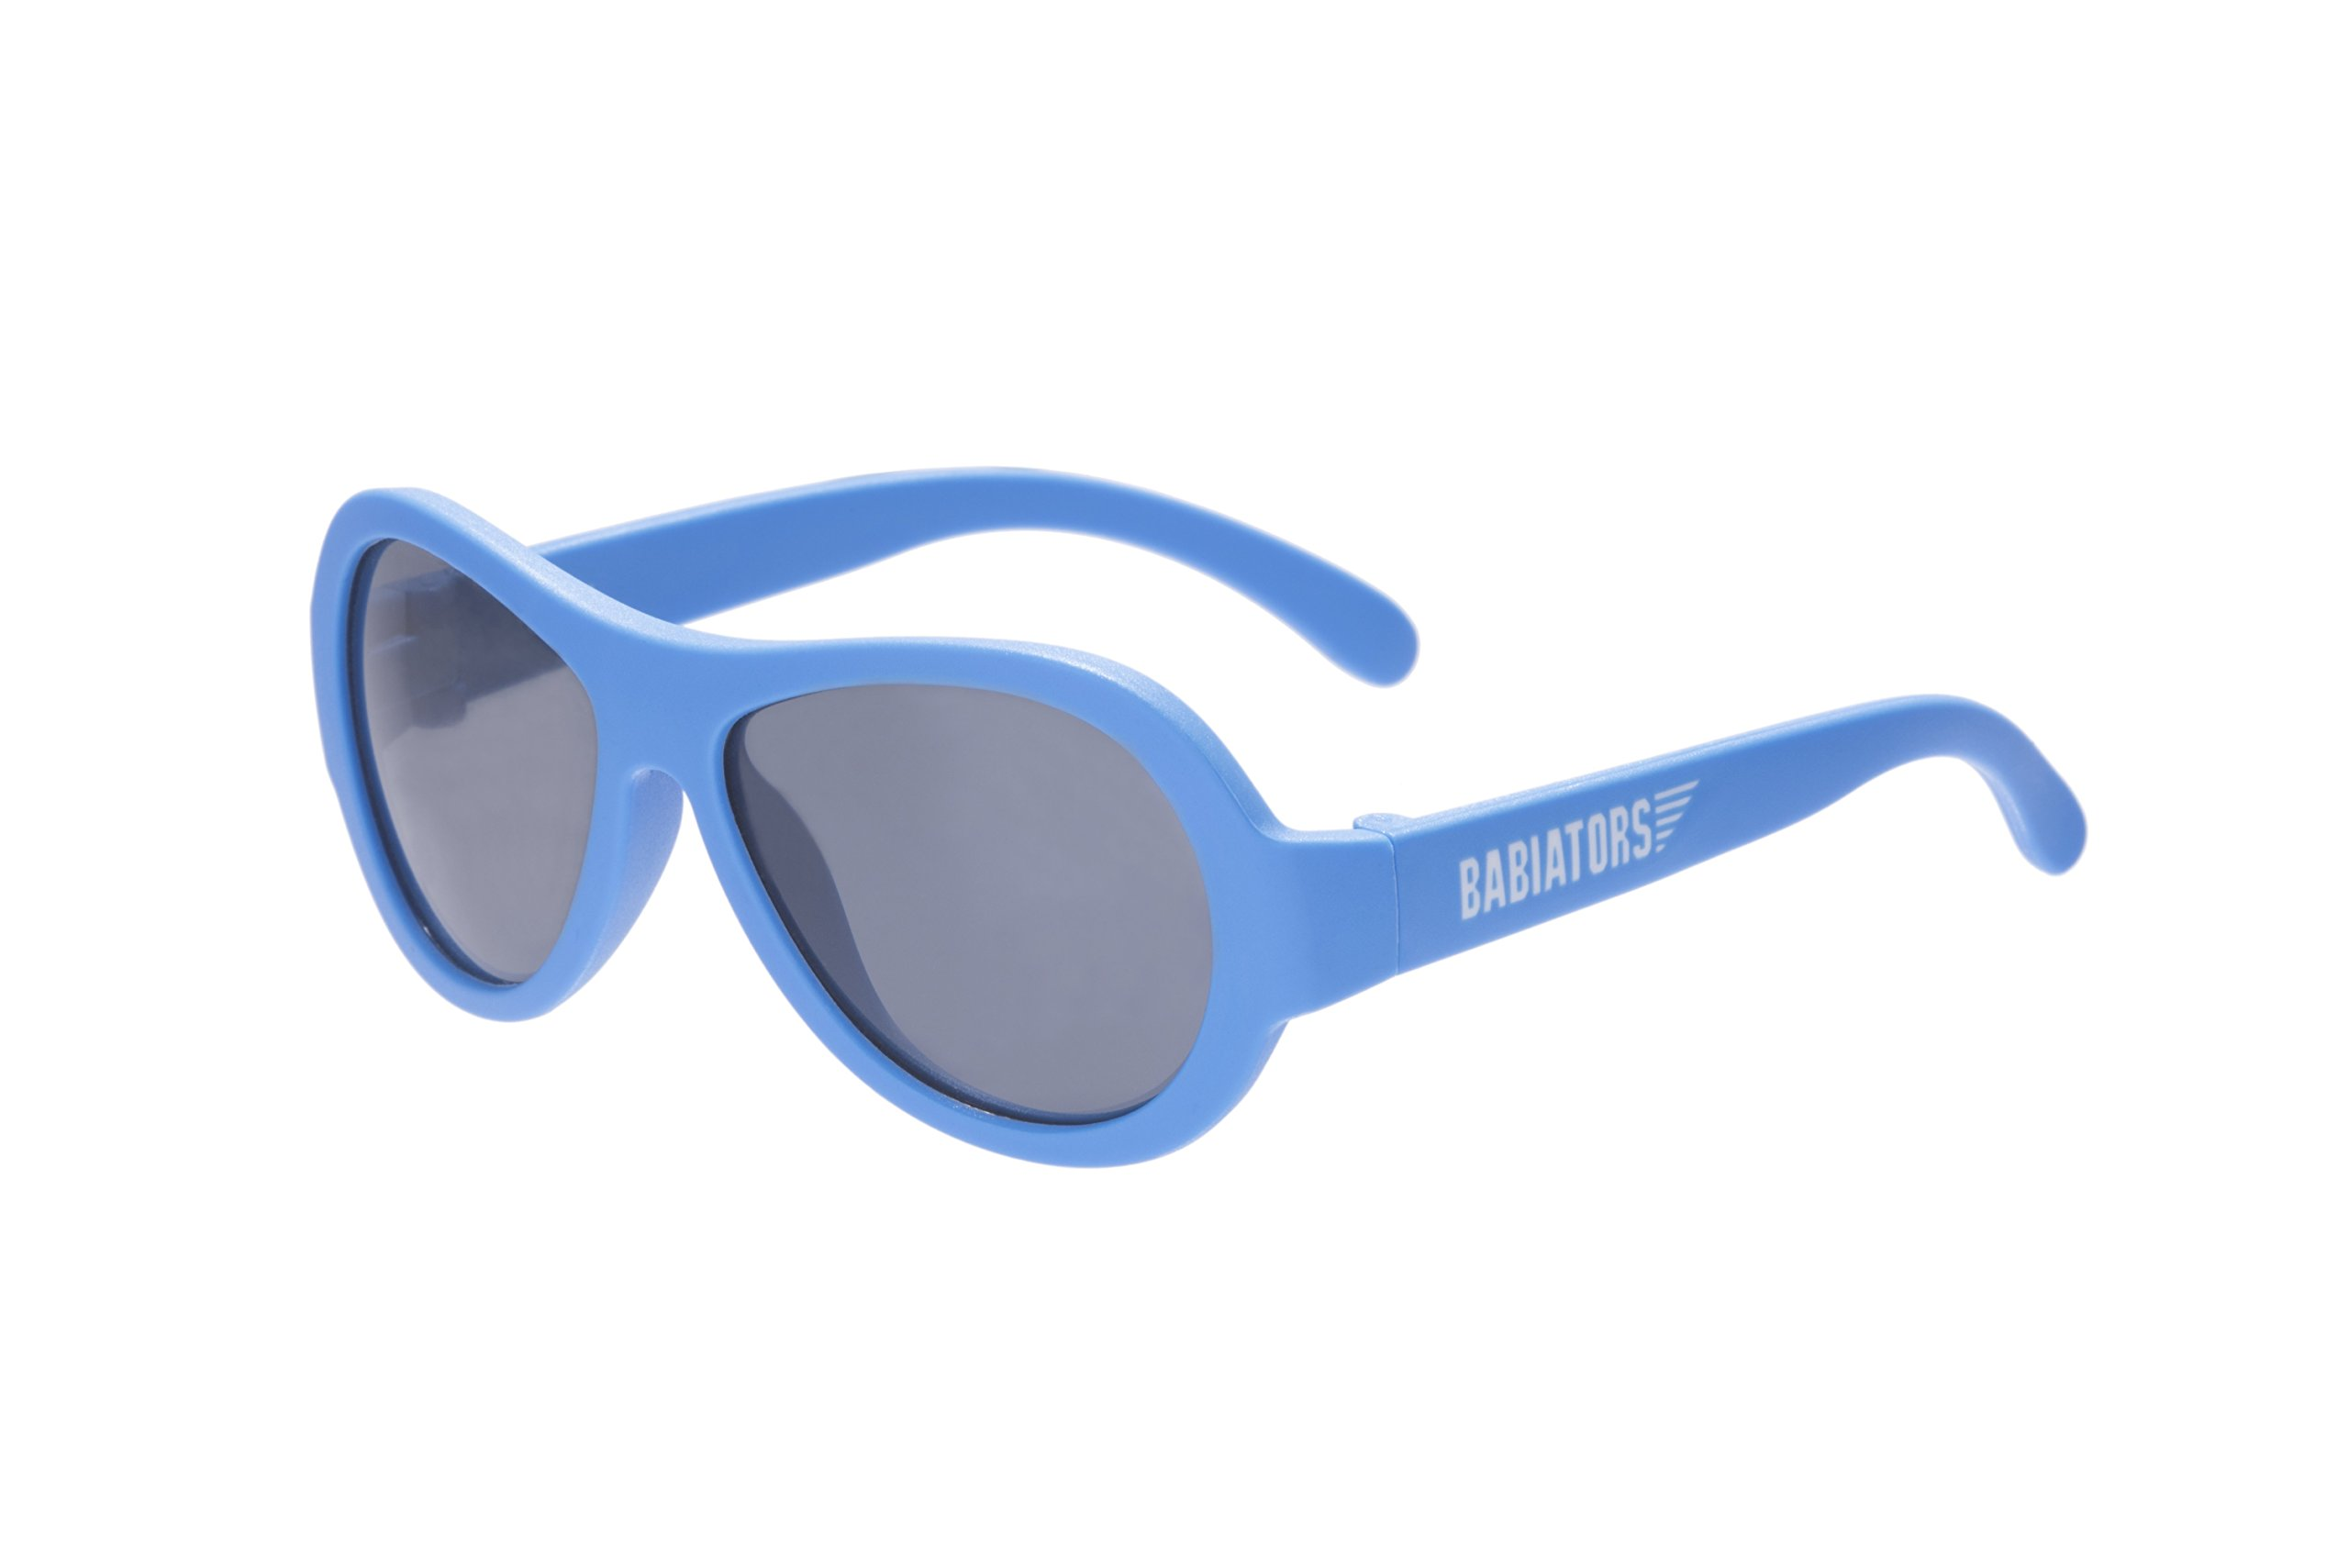 Babiators Original Aviator Sunglasses True Blue Classic 3-5 years